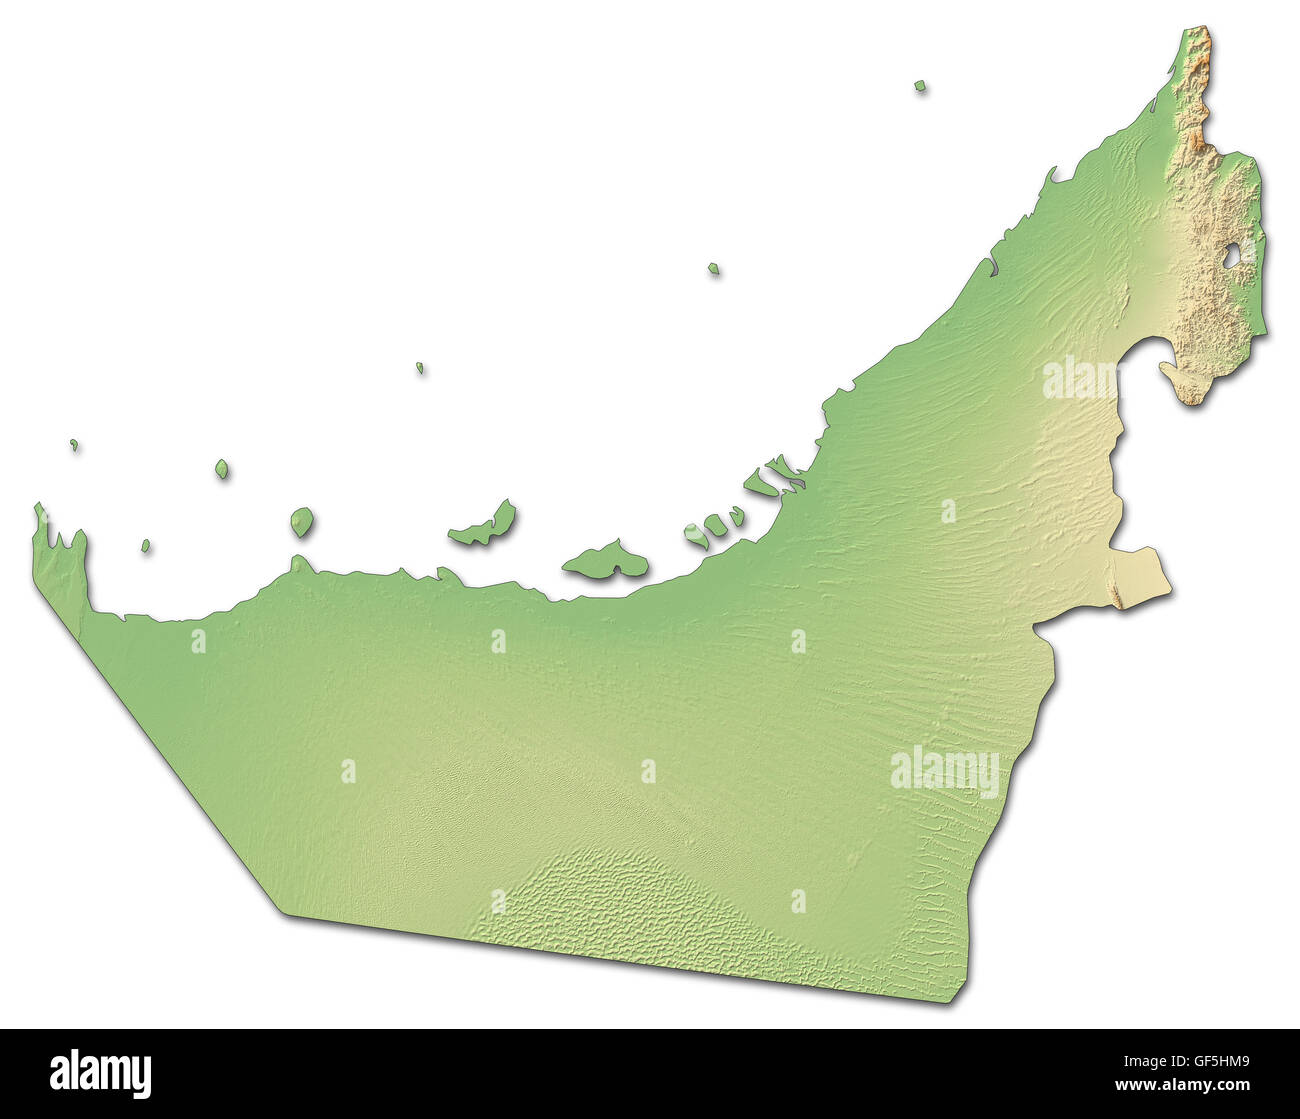 Relief map of United Arab Emirates with shaded relief. - Stock Image